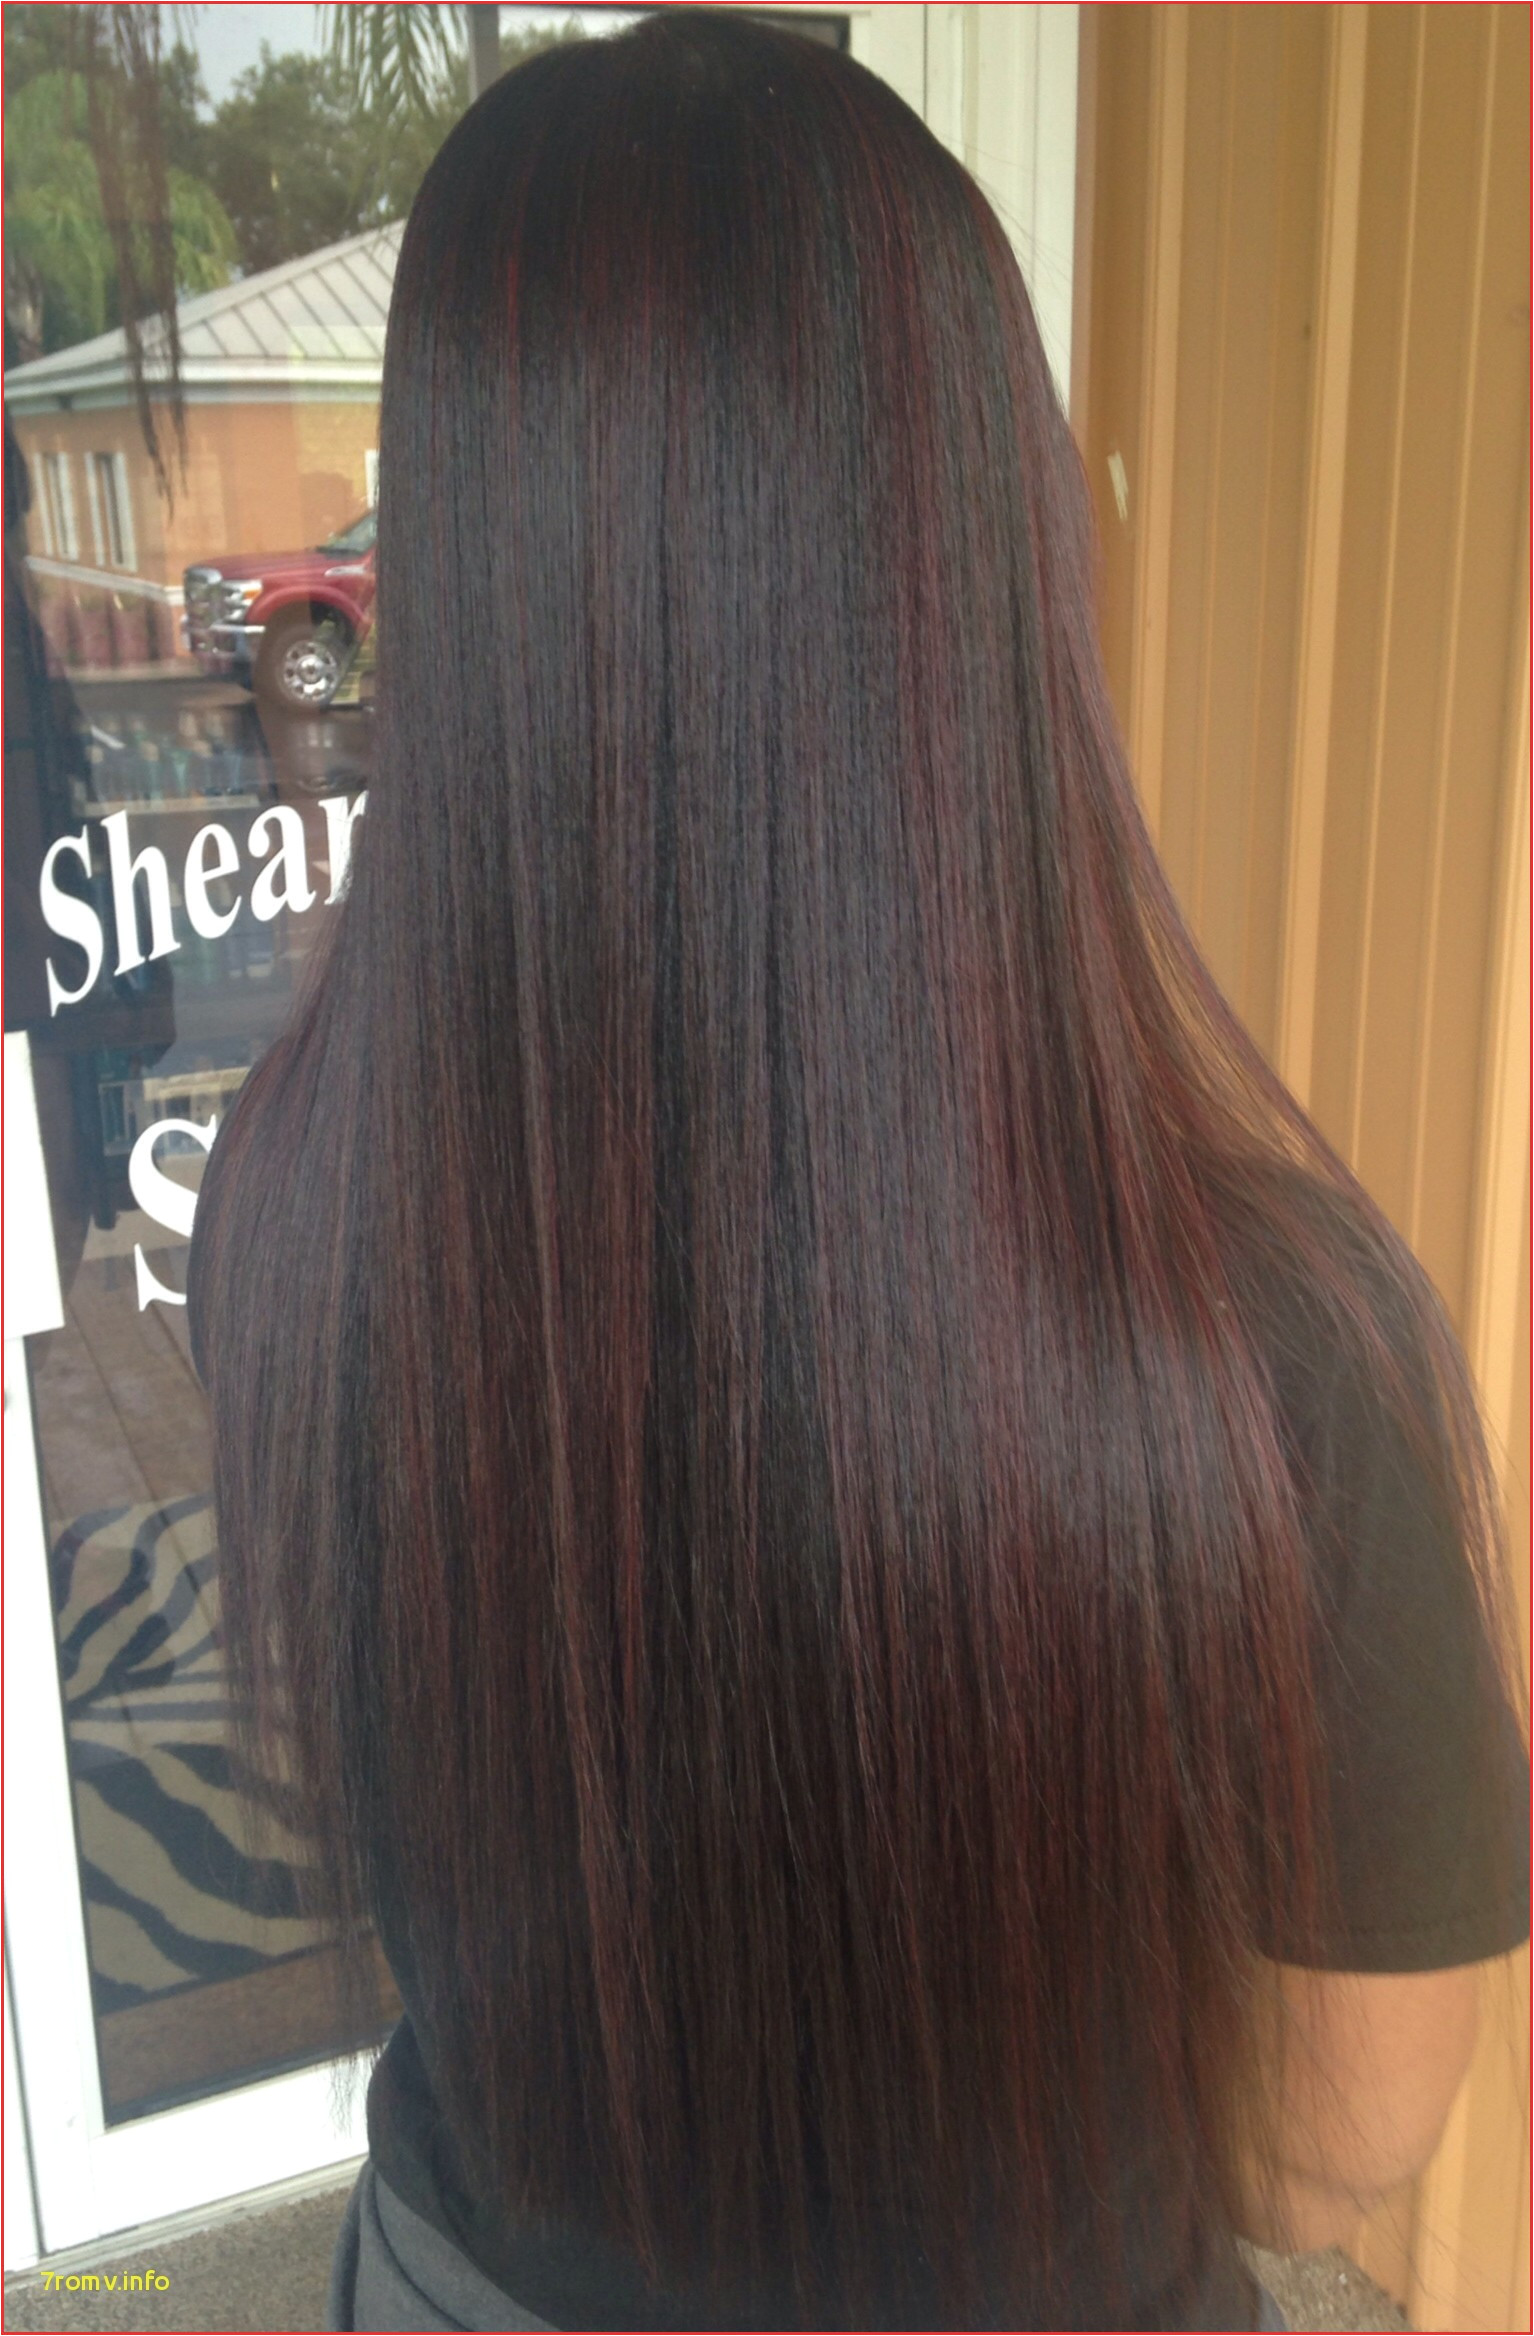 Brown Hair Chart 9837 Awesome Hair Colors Highlights Brown Hair Chart 9837 Black to Brown